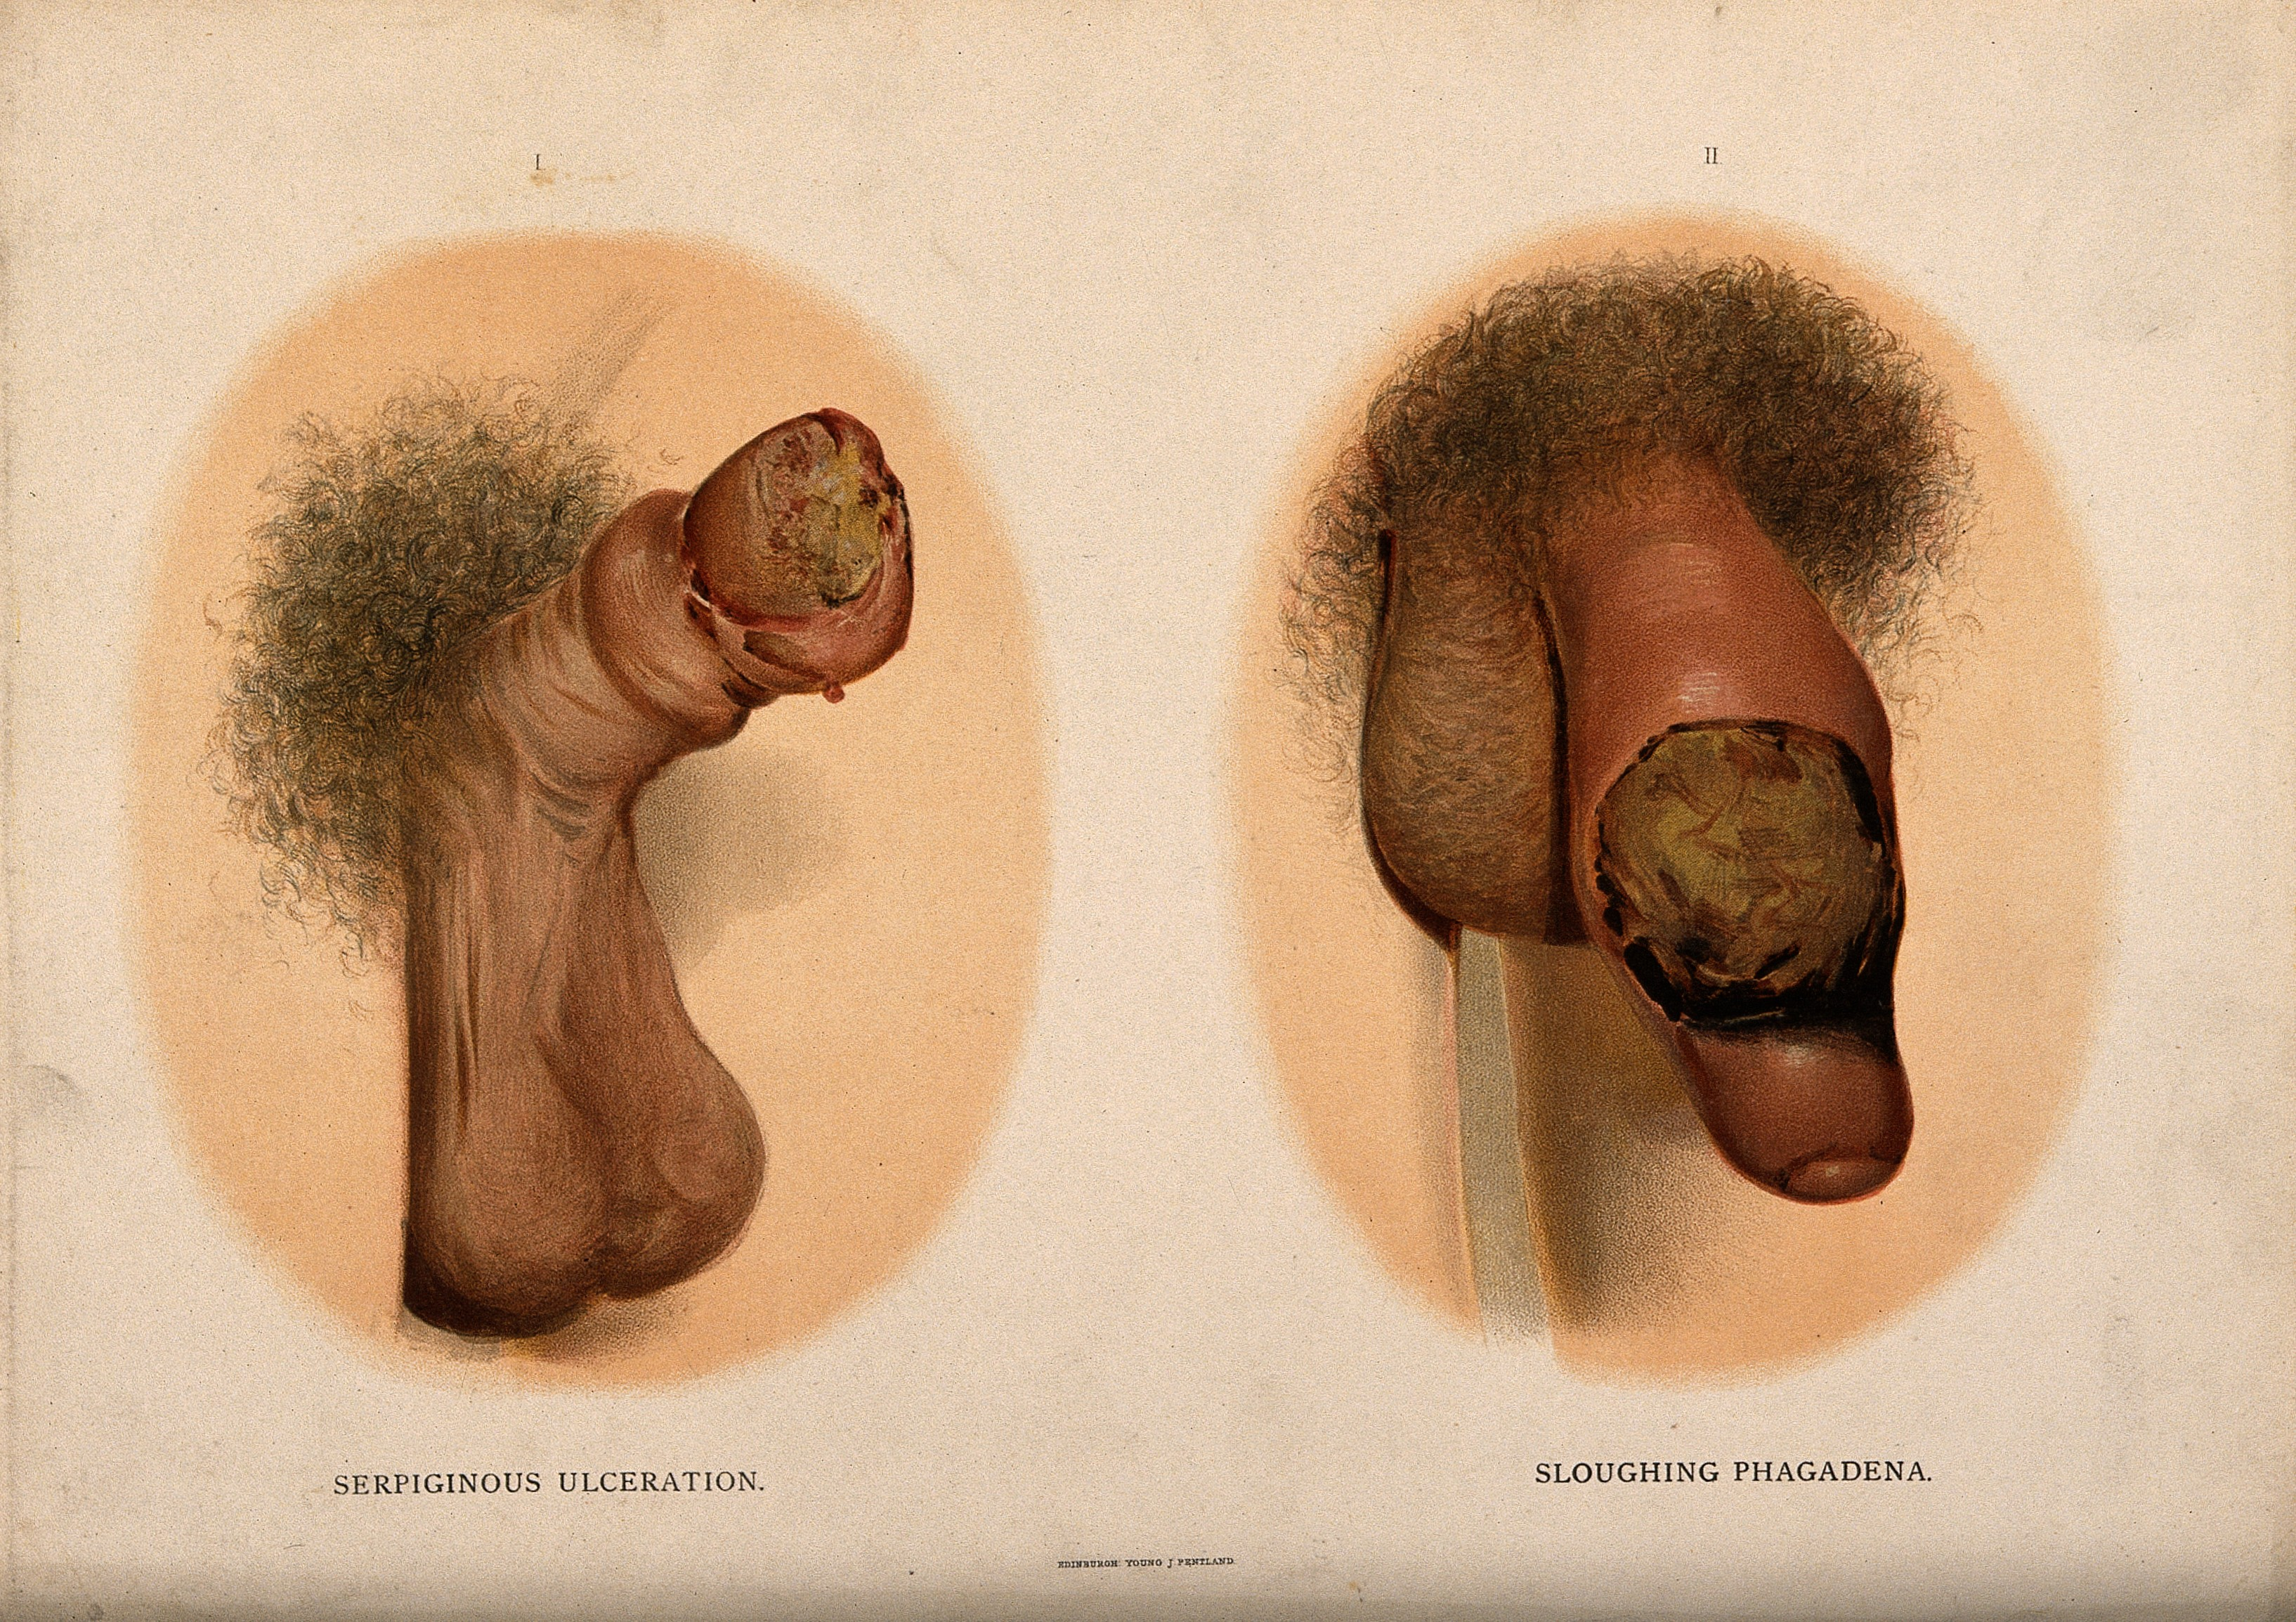 File:A penis with a skin disease on the glans; and a penis with